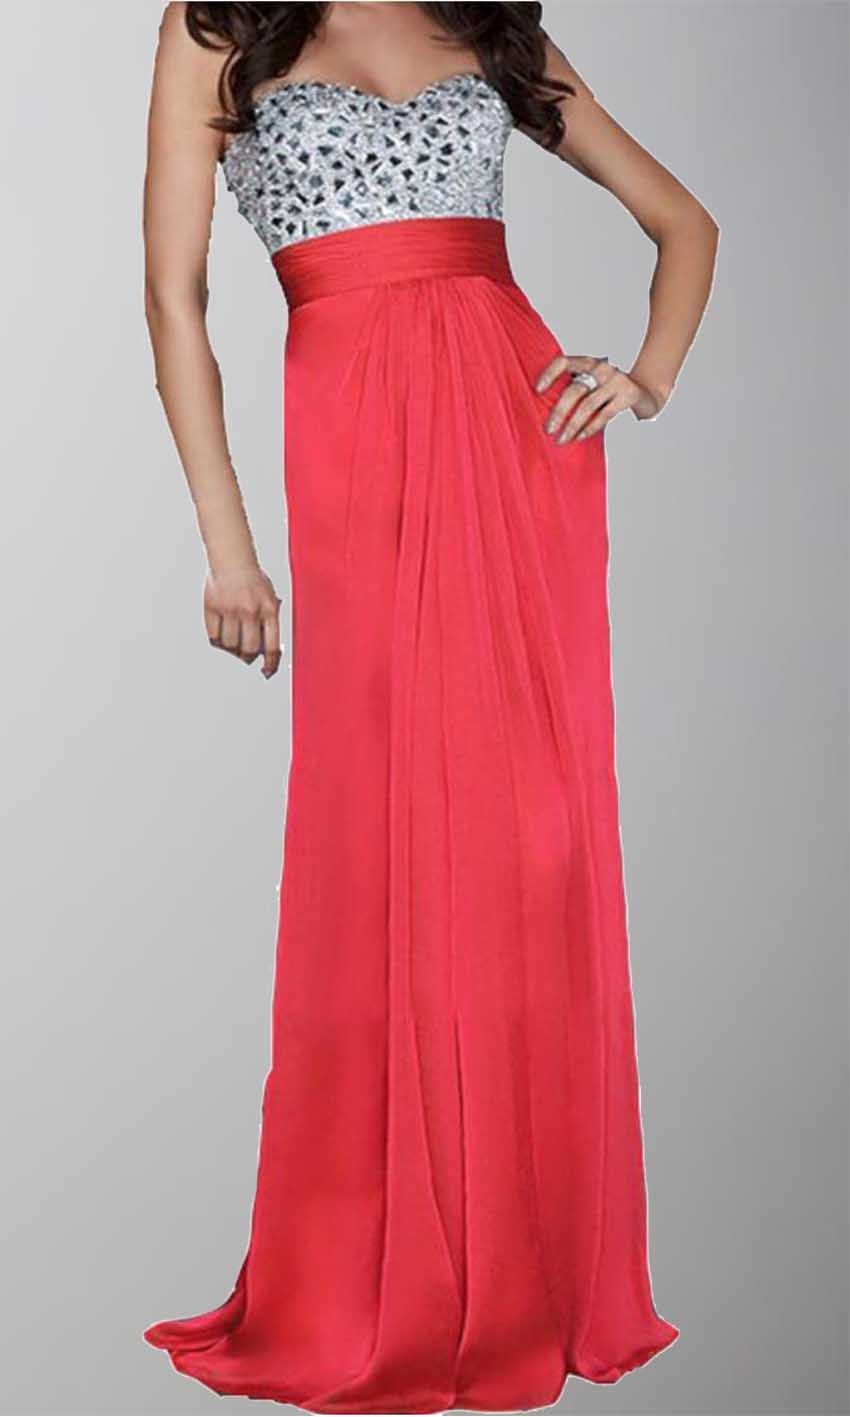 Cross Straps Rhinestone Empire Long Formal Dresses KSP317 [KSP317] - £108.00 : Cheap Prom Dresses Uk, Bridesmaid Dresses, 2014 Prom & Evening Dresses, Look for cheap elegant prom dresses 2014, cocktail gowns, or dresses for special occasions? kissprom.co.uk offers various bridesmaid dresses, evening dress, free shipping to UK etc.